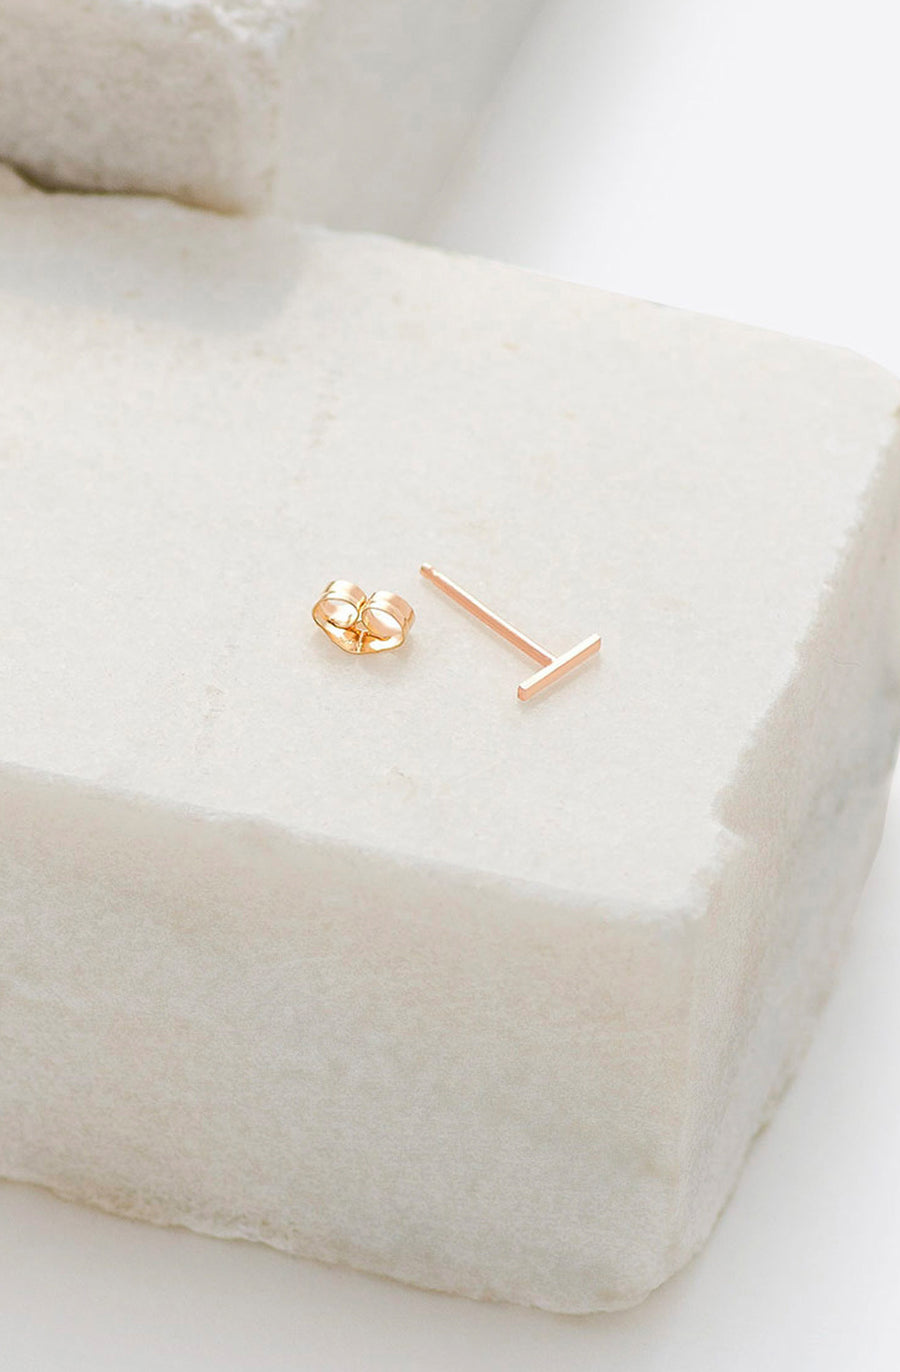 Staple Stud Earring-14k yellow gold